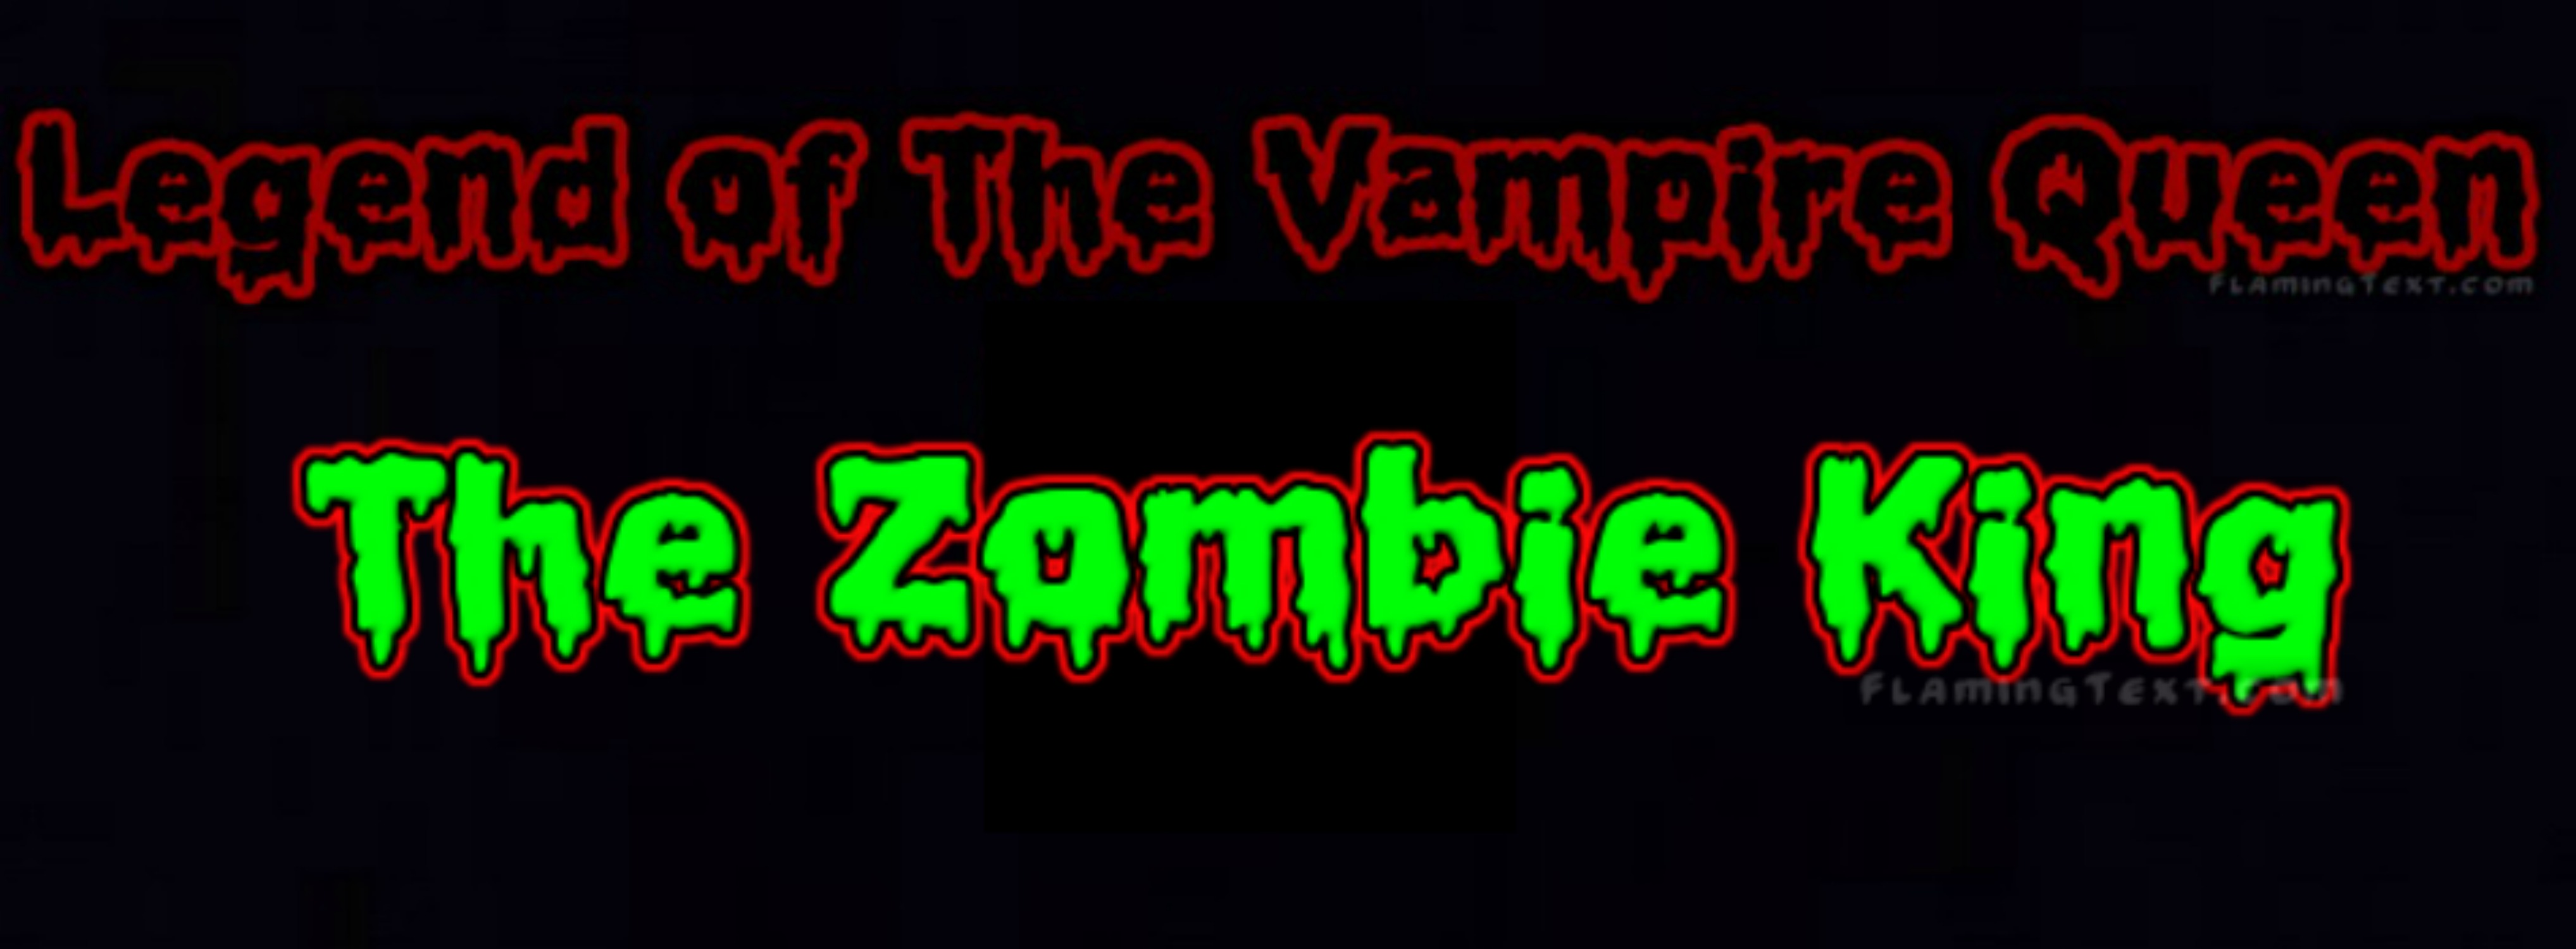 Legend Of The Vampire Queen Ep 2: The Zombie King